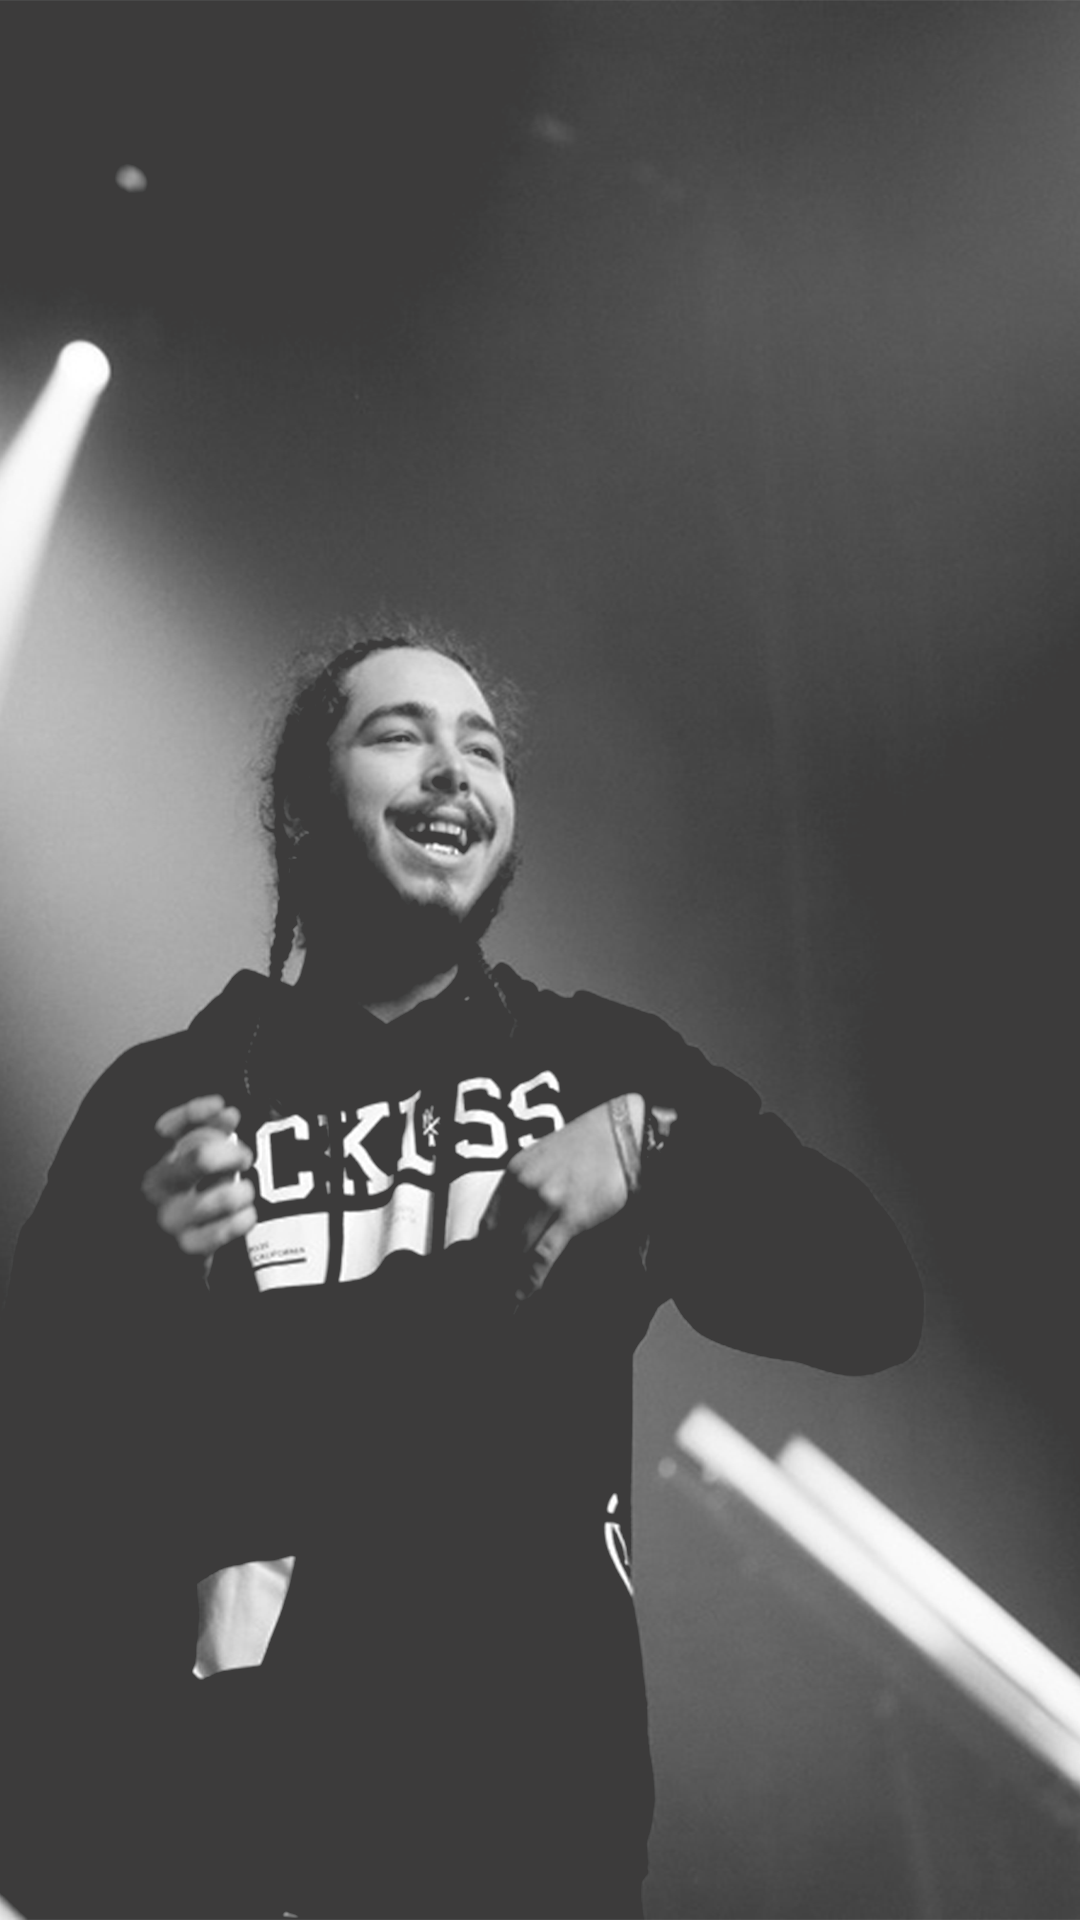 Pin by Angelina Bird on Posty ;)) Post malone wallpaper